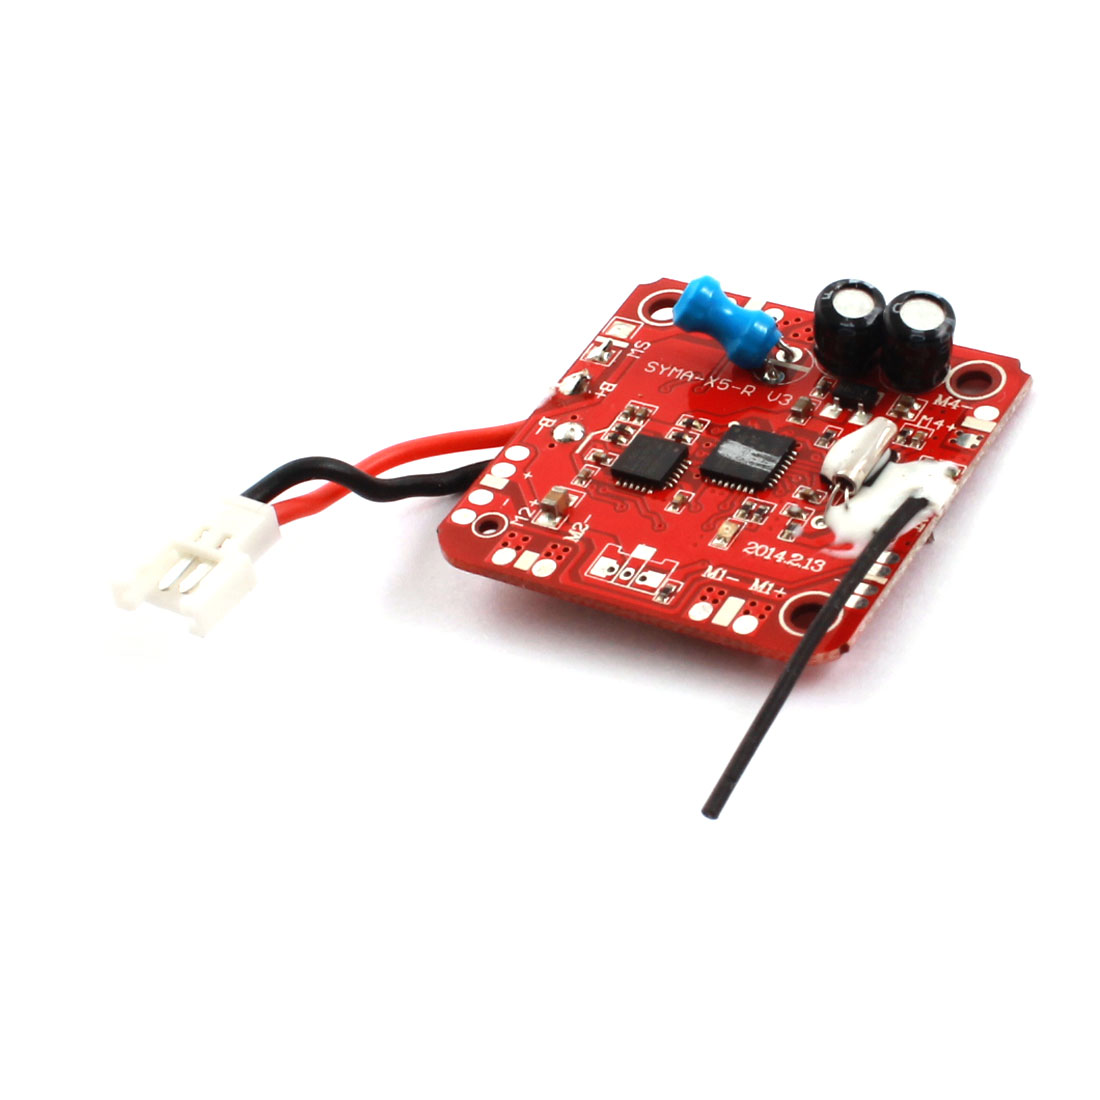 RC Helicopter 30mm Molex51005 Red Receiver PCB Circuit Board Module Spare Part for Syma X5-10